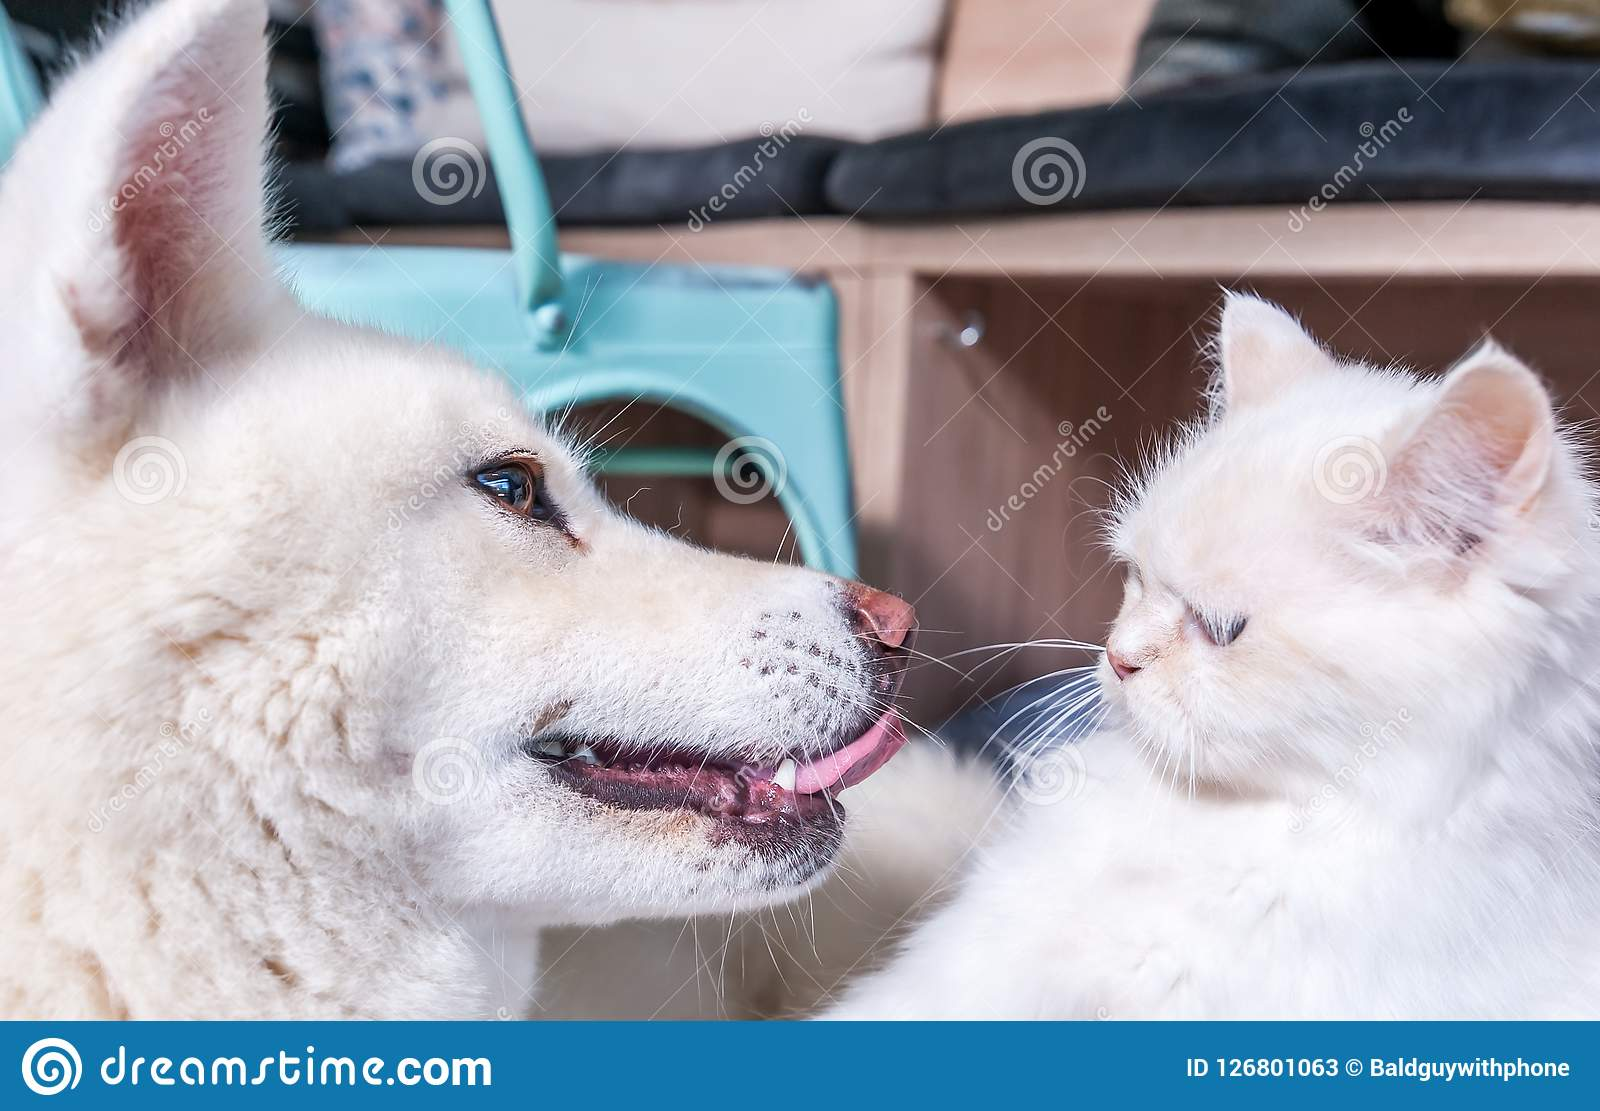 Close up of beautiful white dog and cat Japanese Akita Inu and domestic fluffy cat with funny face expressions